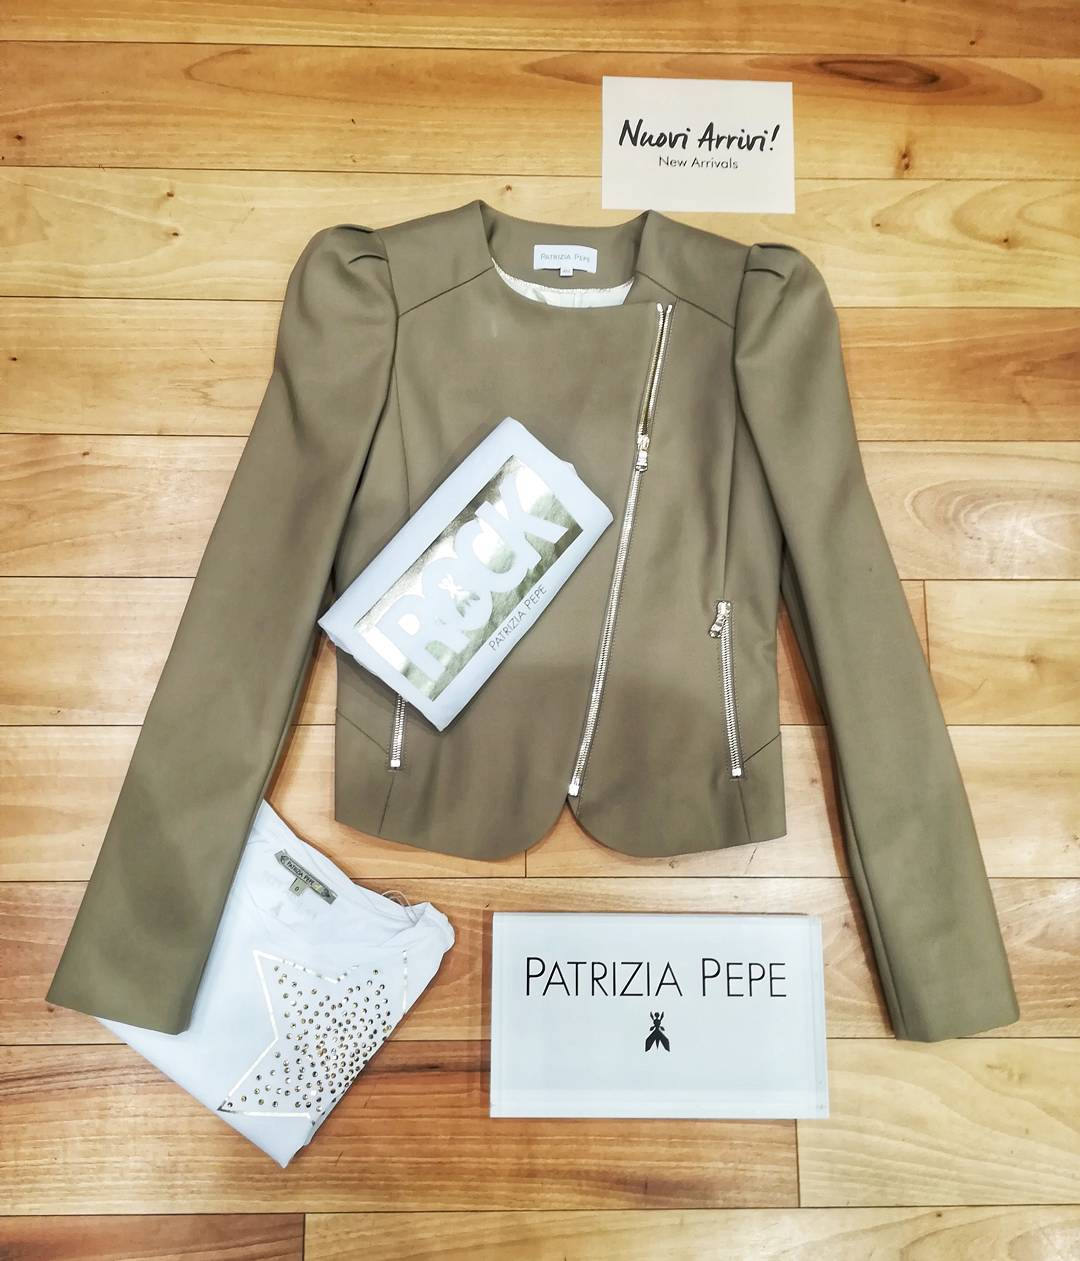 Patrizia Pepe New collection For order /per info WhatsApp +39 3927284124 Negozio 0296193442 Corso Italia 7/9, Saronno #gioandgio #patriziapepe #giacca#tshirt#shopping #coolshoes #newclothingbrand#momentidelgiorno#psicologia#immagini#citazioni#instapost#life#instagoods #weddingdressshop #divine #lookforyou #easyshopping #bijoux #botiqueclothing #thebestbrand #wow#beautifullook #fitoutfit #boutique #lookbetter #forlady #onlineshopping #simple